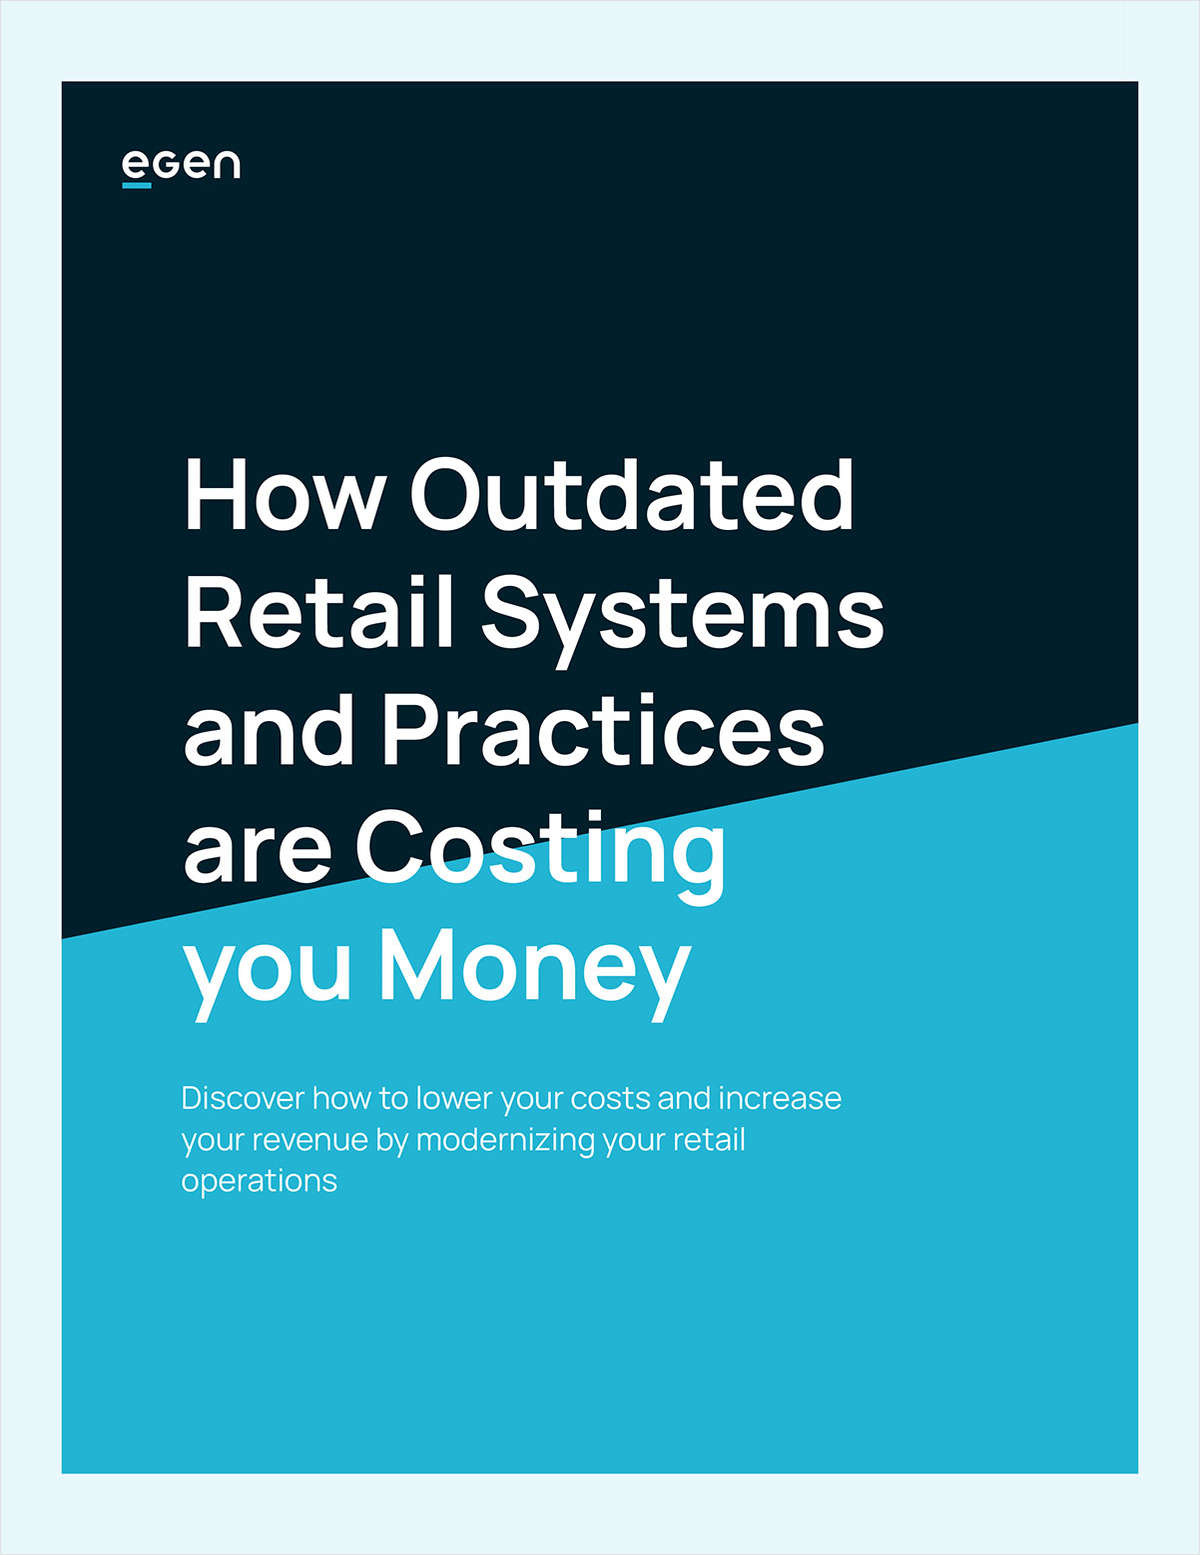 How Outdated Retail Systems and Practices are Costing you Money